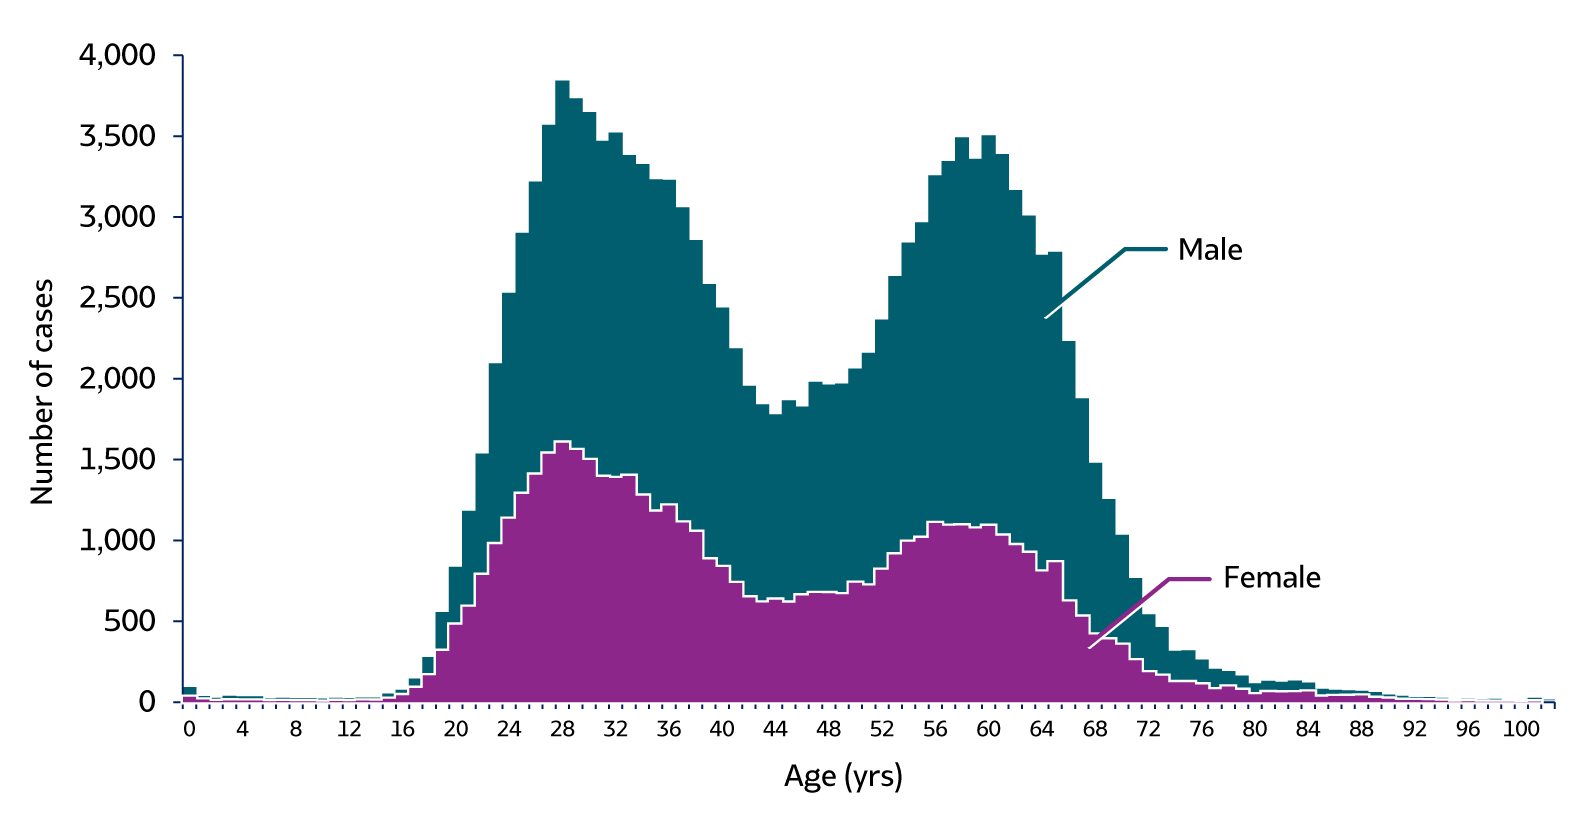 Figure 3.8. The graph shows the number of newly reported chronic hepatitis C cases by sex and age in the United States for 2018.  The graph shows a bimodal distribution with peaks in the 20 to 40 year and 55-68 years age groups.  Rates of chronic hepatitis C were consistently higher for males than for females.